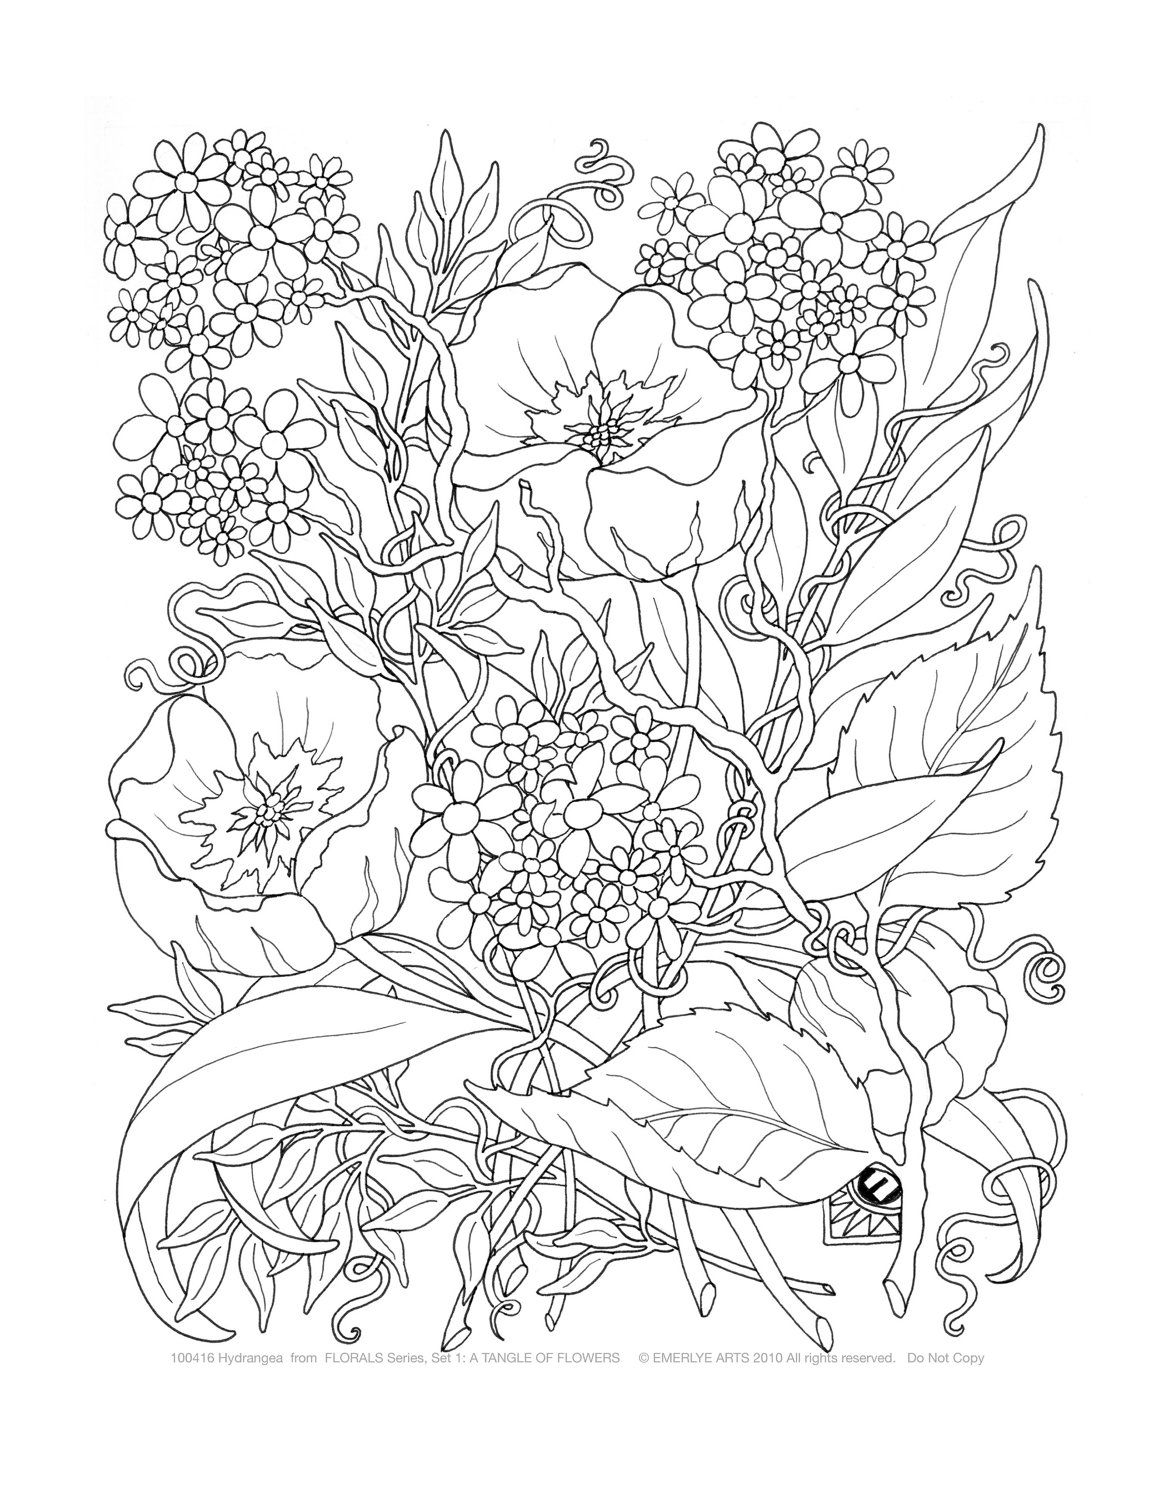 Free online coloring pages for adults - Get The Latest Free Coloring Pages For Adults Images Favorite Coloring Pages To Print Online